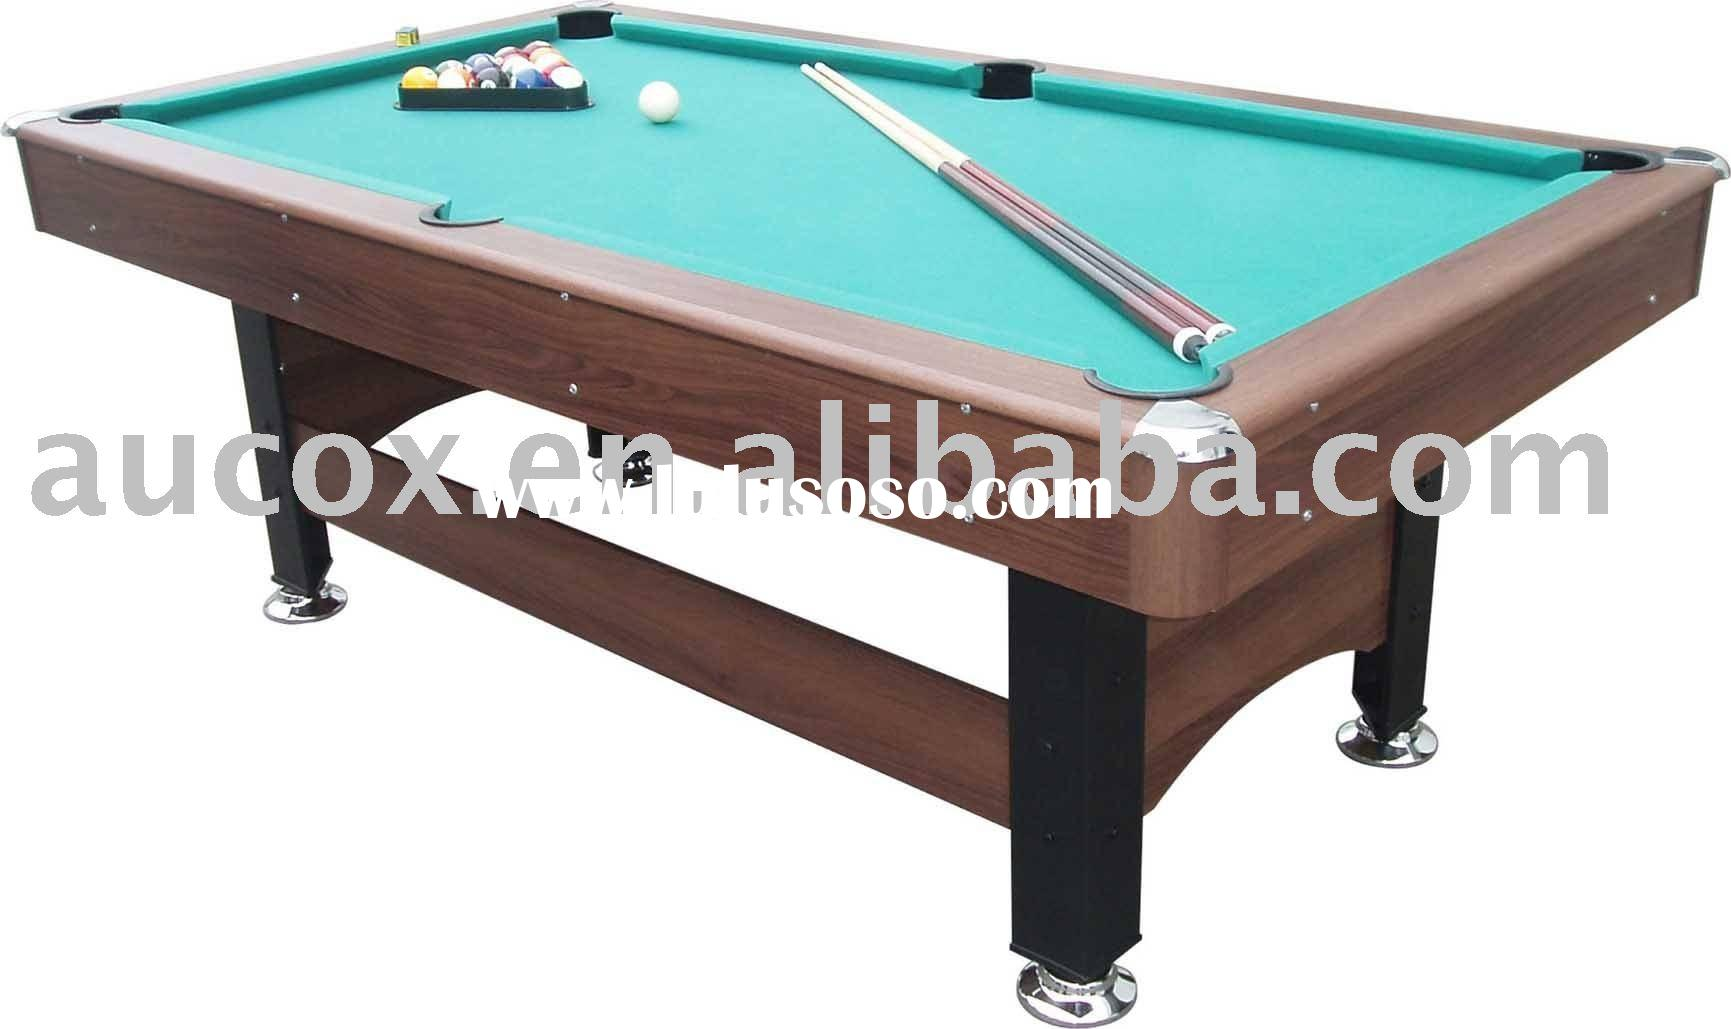 metro cheap img hot for table detroit cloth sale blog pool tables tubs custom pools